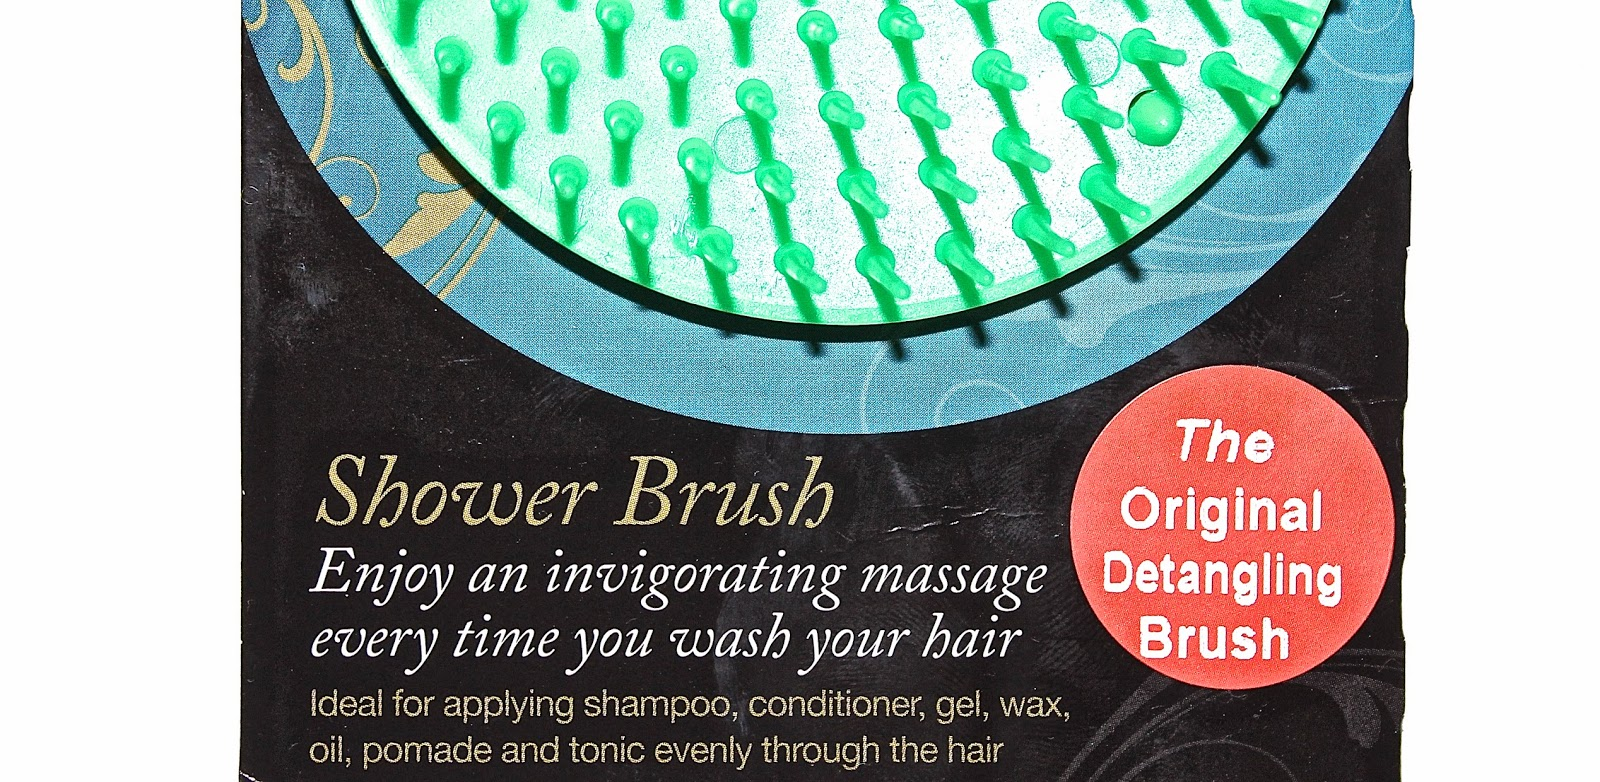 packaging stating Denman Detangling brush is the original detangling brush